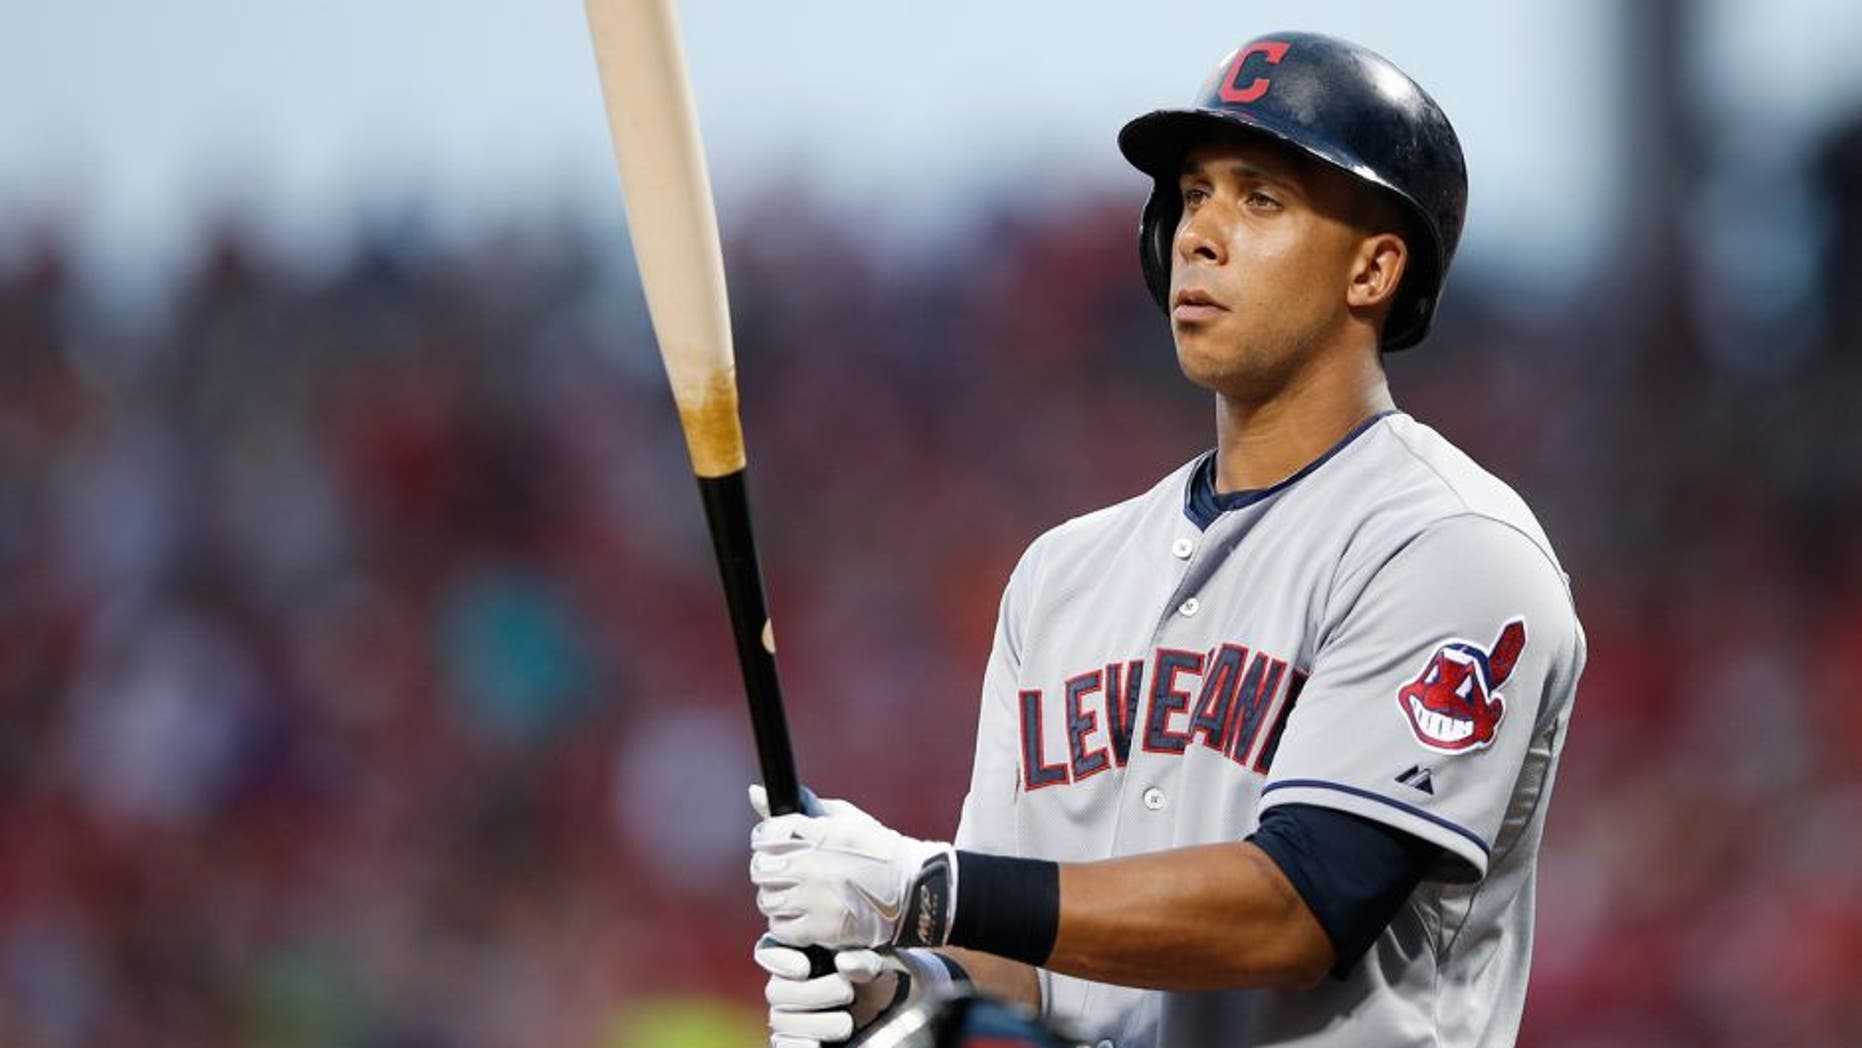 CINCINNATI, OH - JULY 17: Michael Brantley #23 of the Cleveland Indians looks on before batting against the Cincinnati Reds during the game at Great American Ball Park on July 17, 2015 in Cincinnati, Ohio. The Reds defeated the Indians 6-1. (Photo by Joe Robbins/Getty Images)